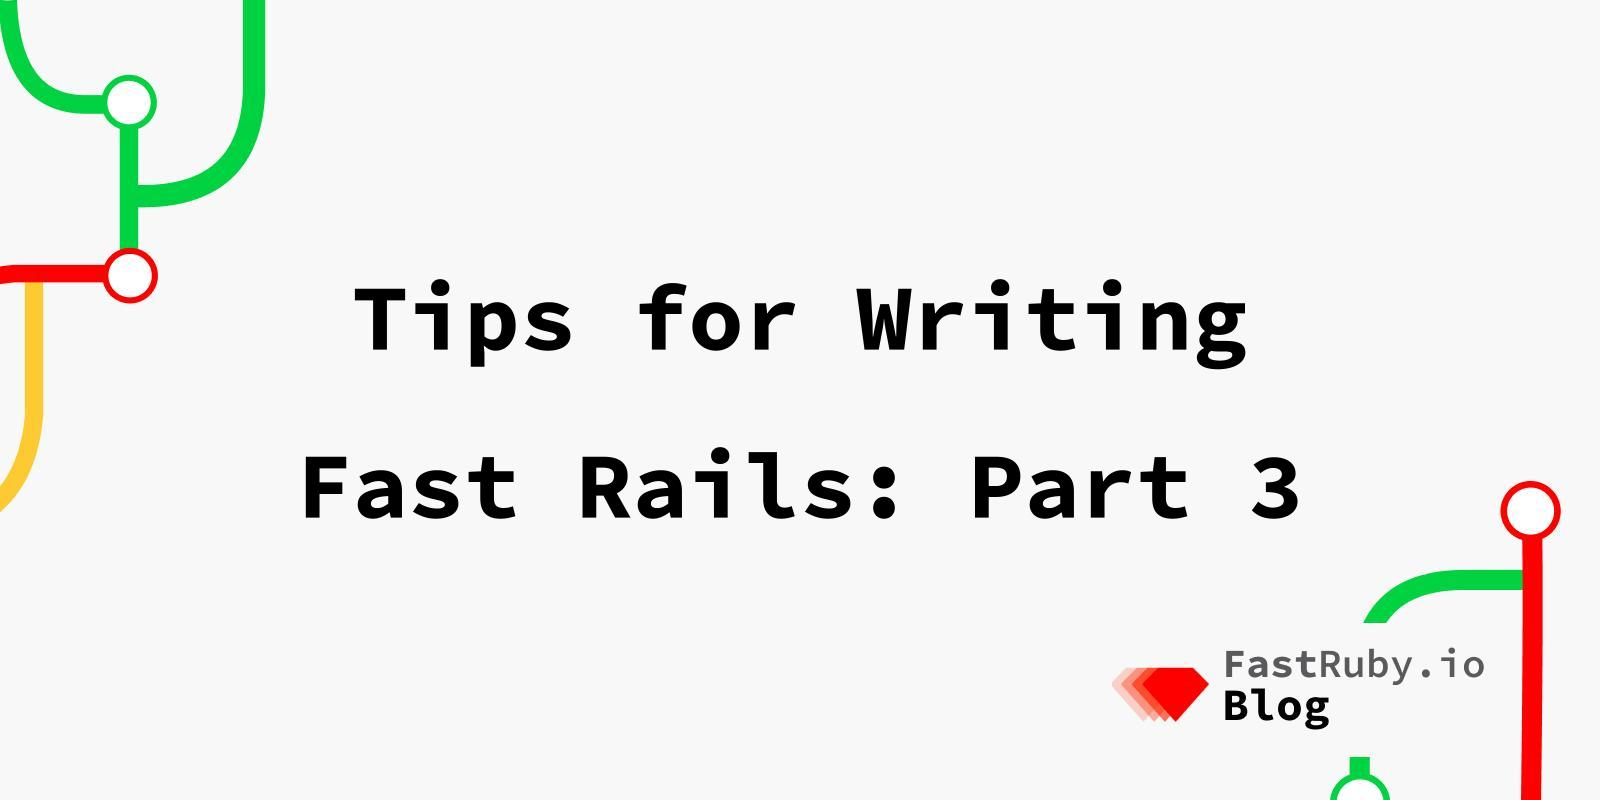 Tips for Writing Fast Rails: Part 3